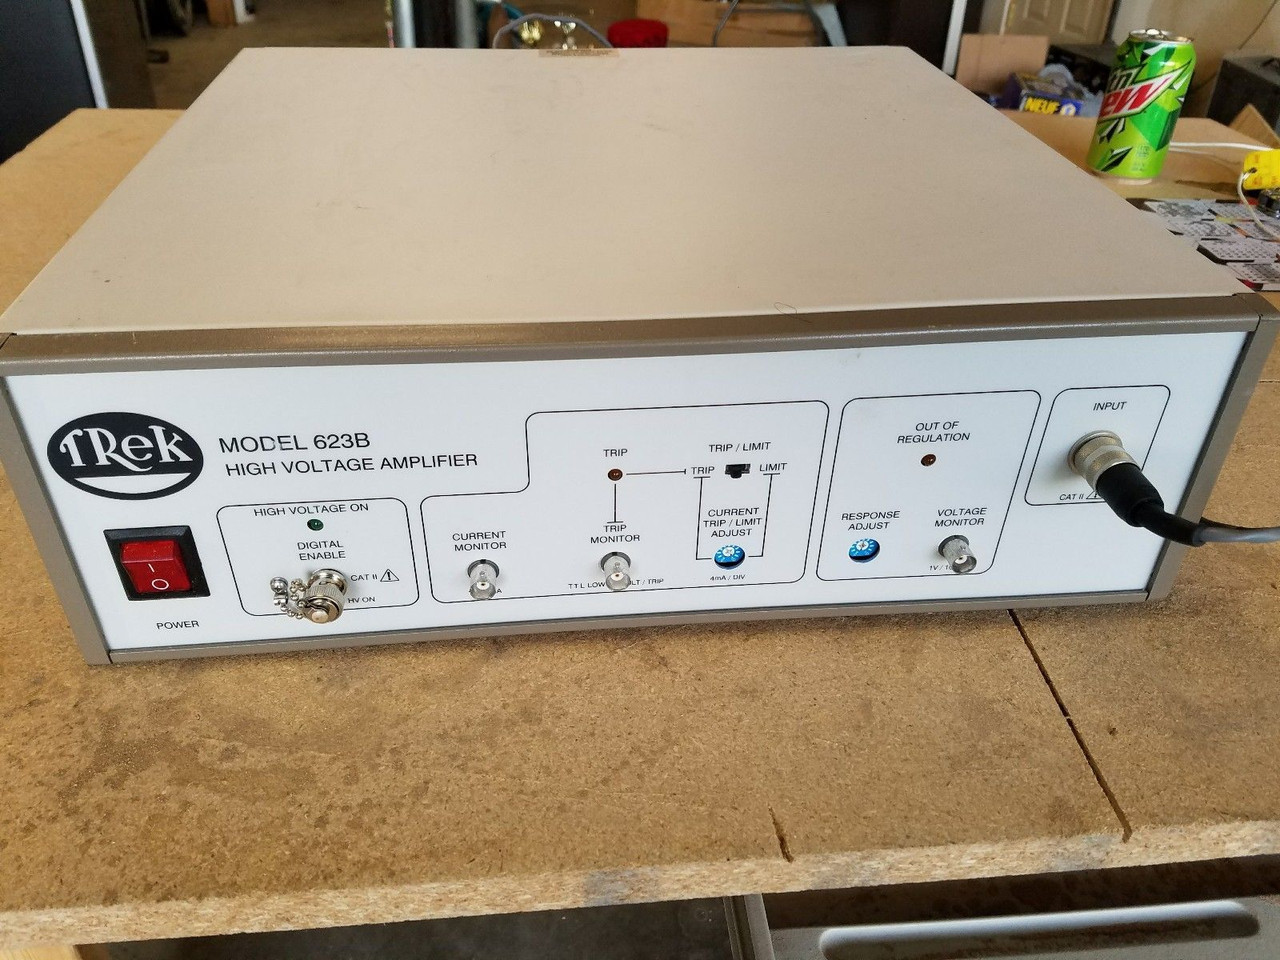 Trek 623B-L-CE High Voltage Amplifier, Refurbished, with cables, manual and warranty